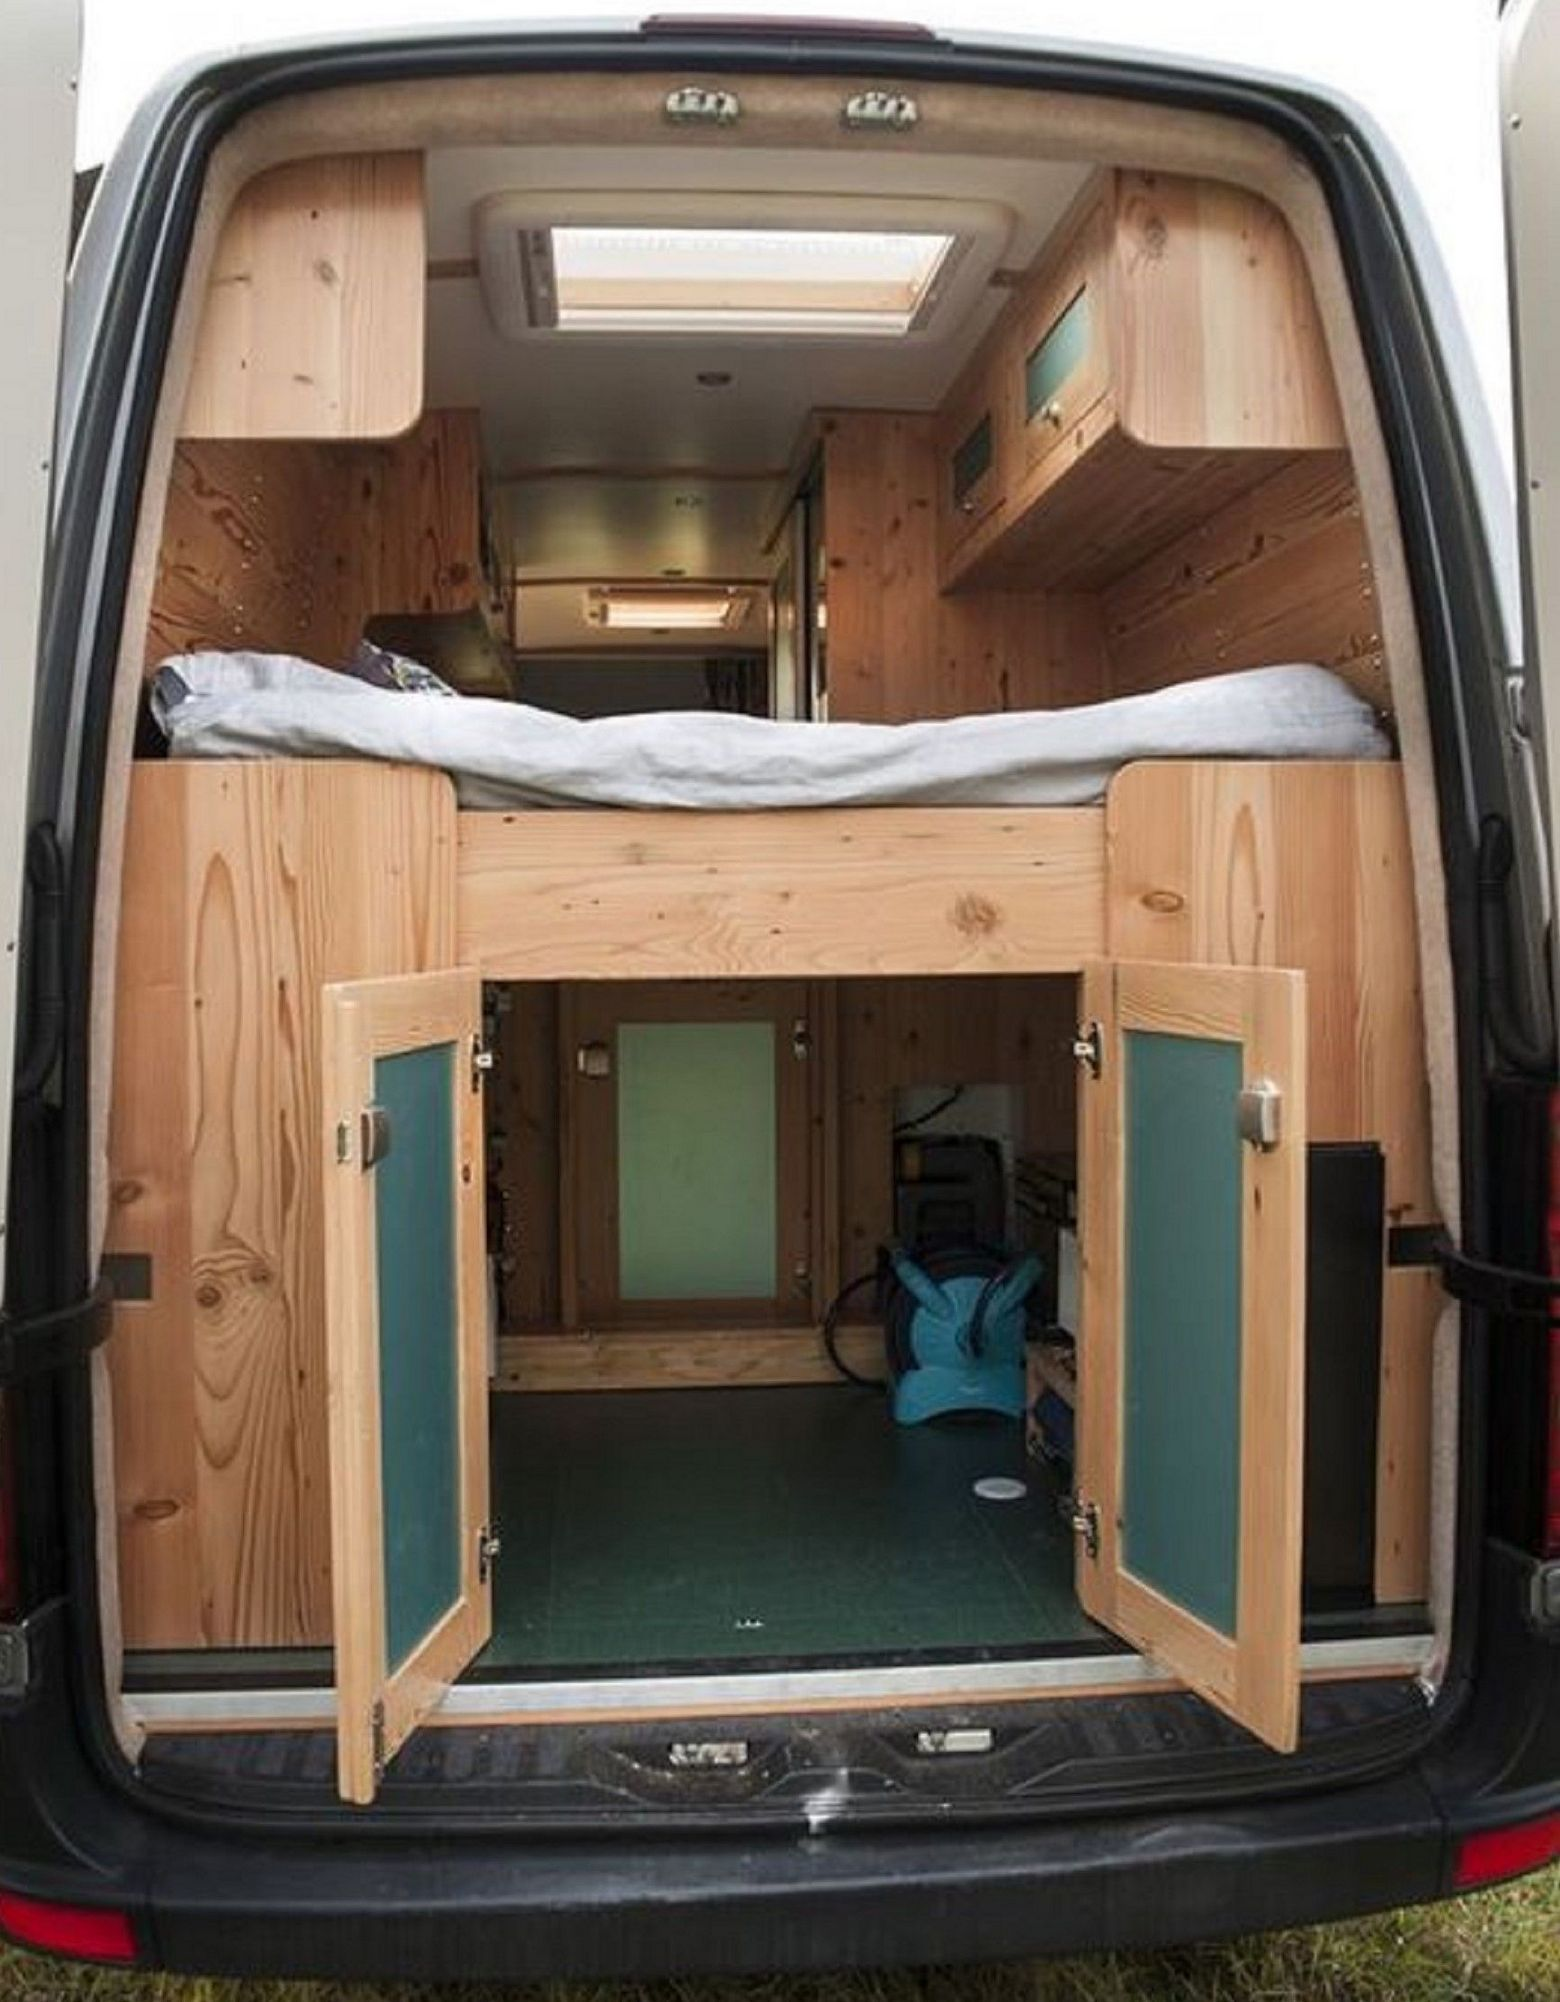 28 Awesome Rv Camper Does Van Life Remodel Inspire You Ideas When You Re Transporting Rvs You Can Sign On To Drive Complete Ti Van Life Diy Van Life Van Home